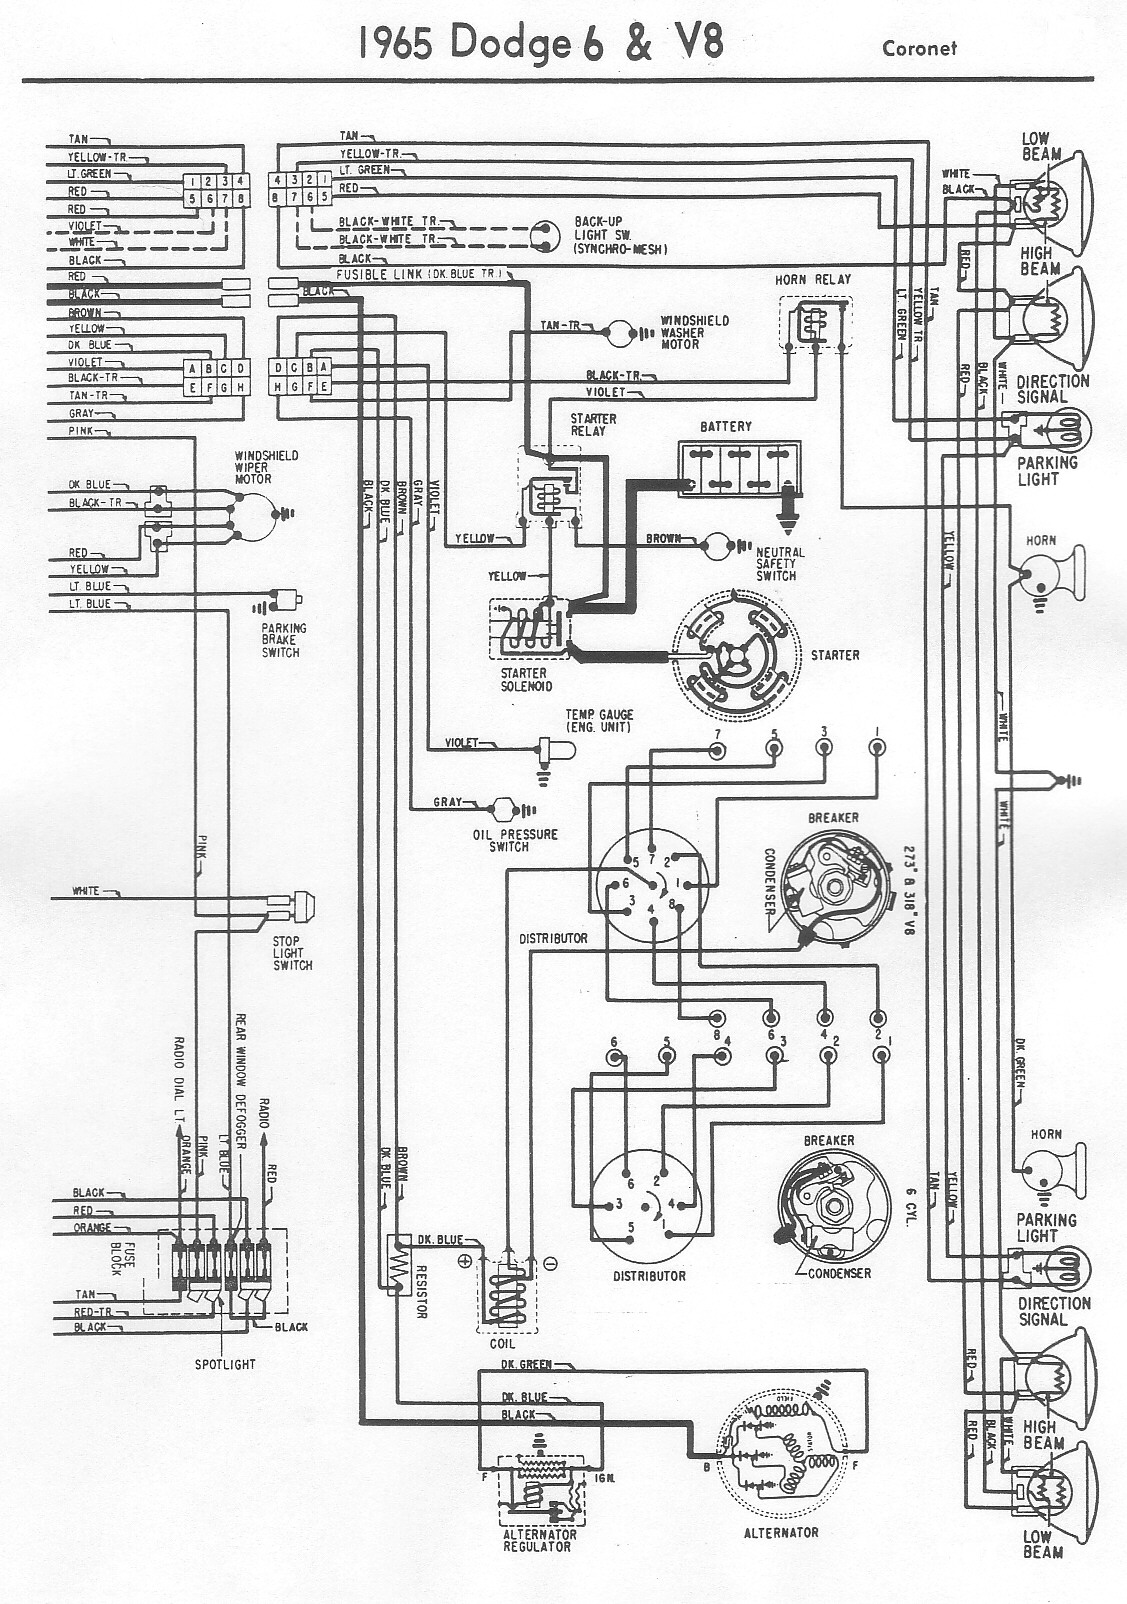 Mopar 1988 Wiring Diagram Page 4 And Schematics Car Audio Product Get Free Image About Vehicle Diagrams Source Bzerob Com Technical Articles Library Section Rh Dodge Truck Basic